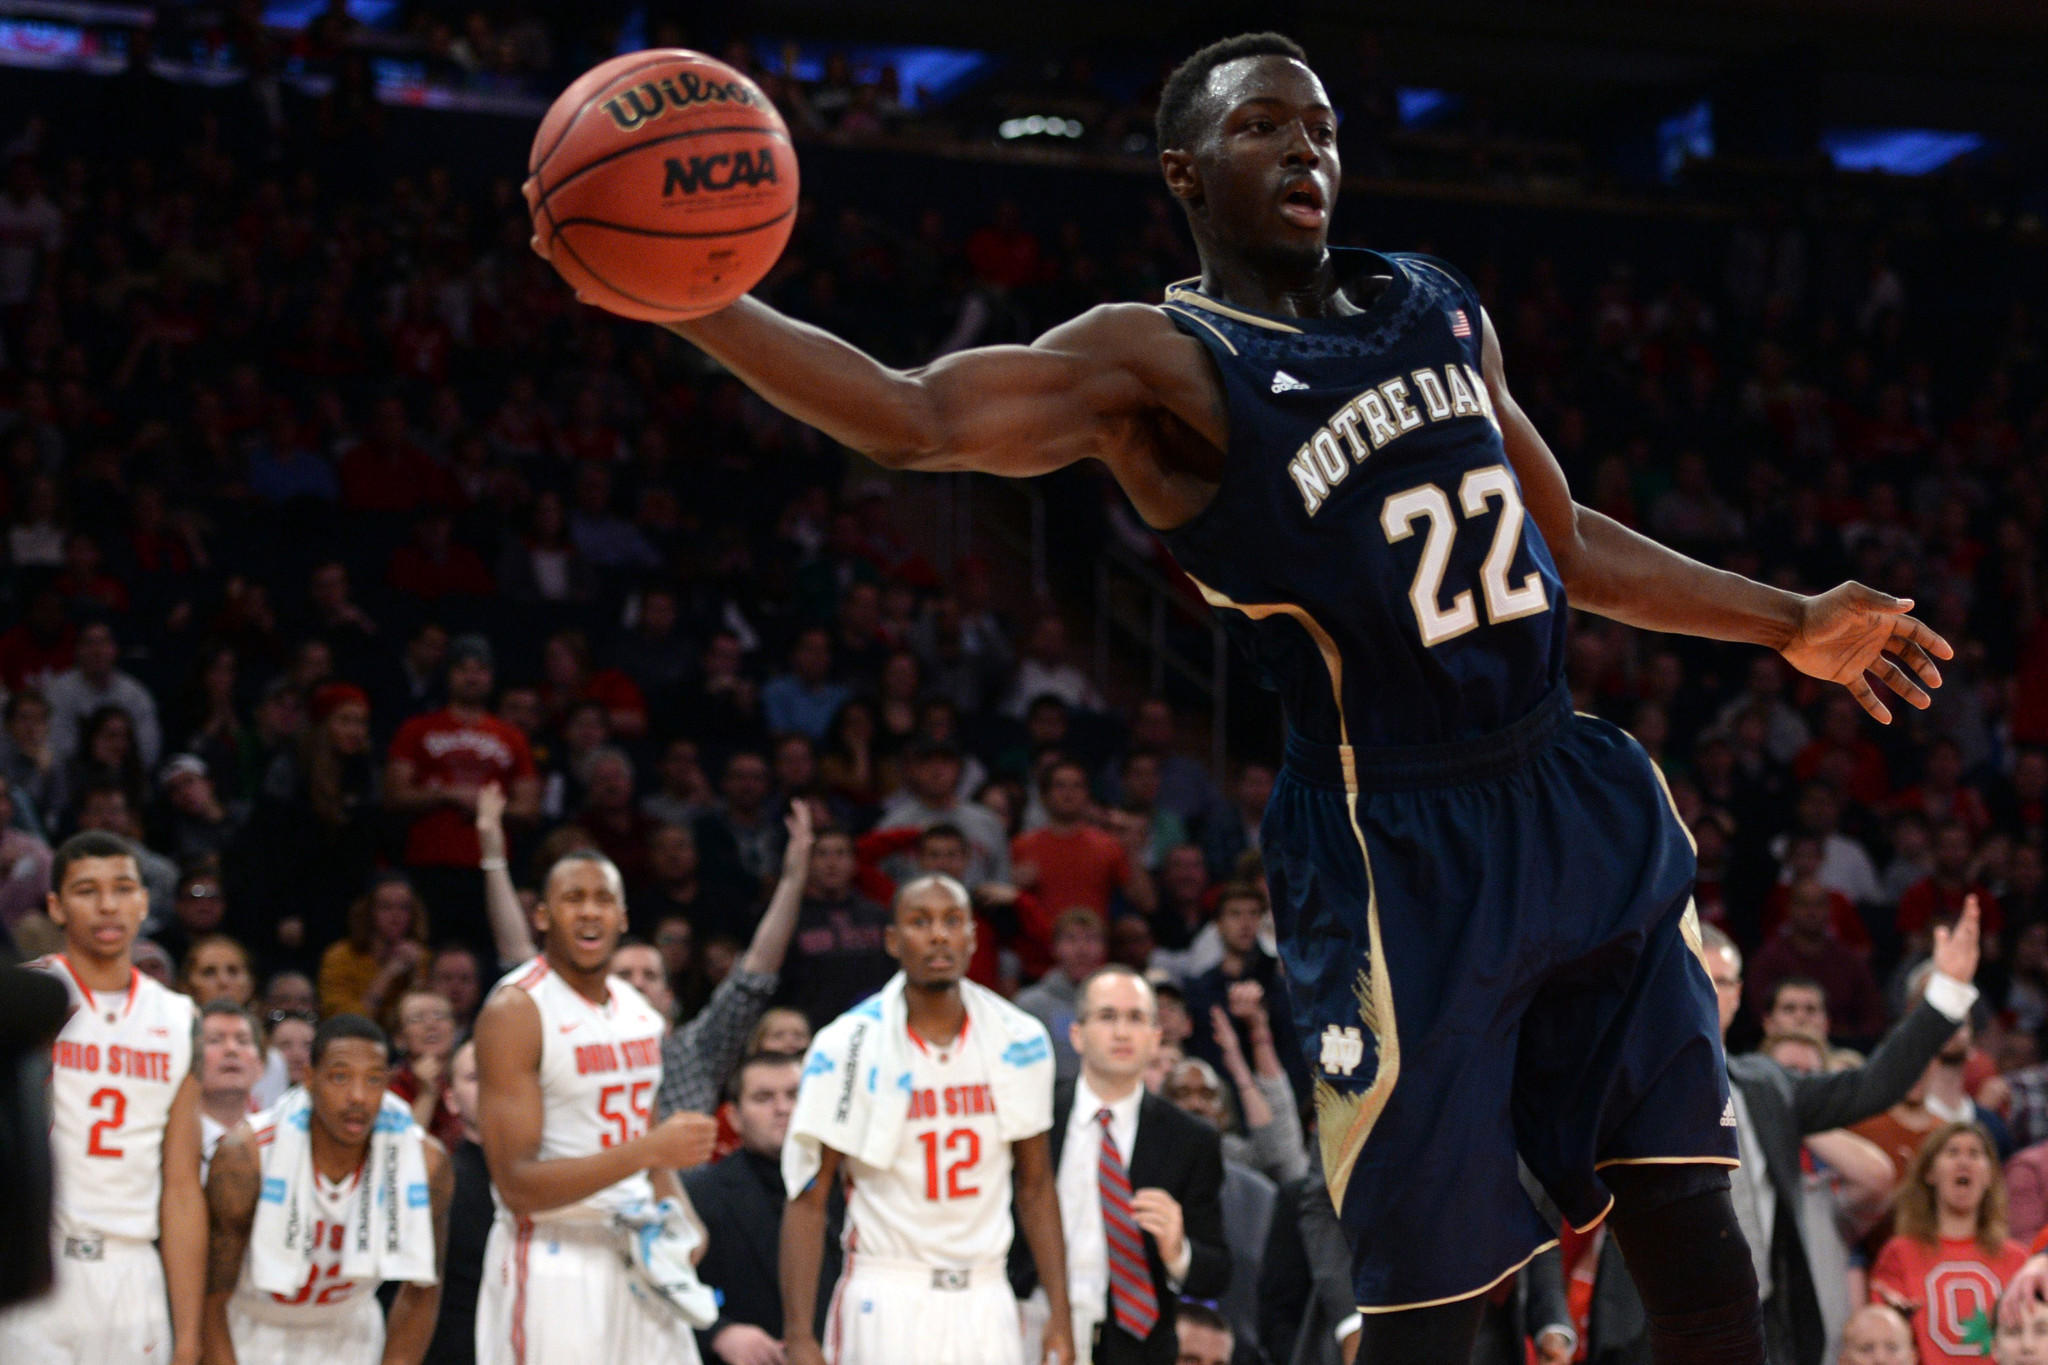 Notre Dame guard Jerian Grant saves a ball from going out of bounds against Ohio State during the second half of the Gotham Classic at Madison Square Garden.